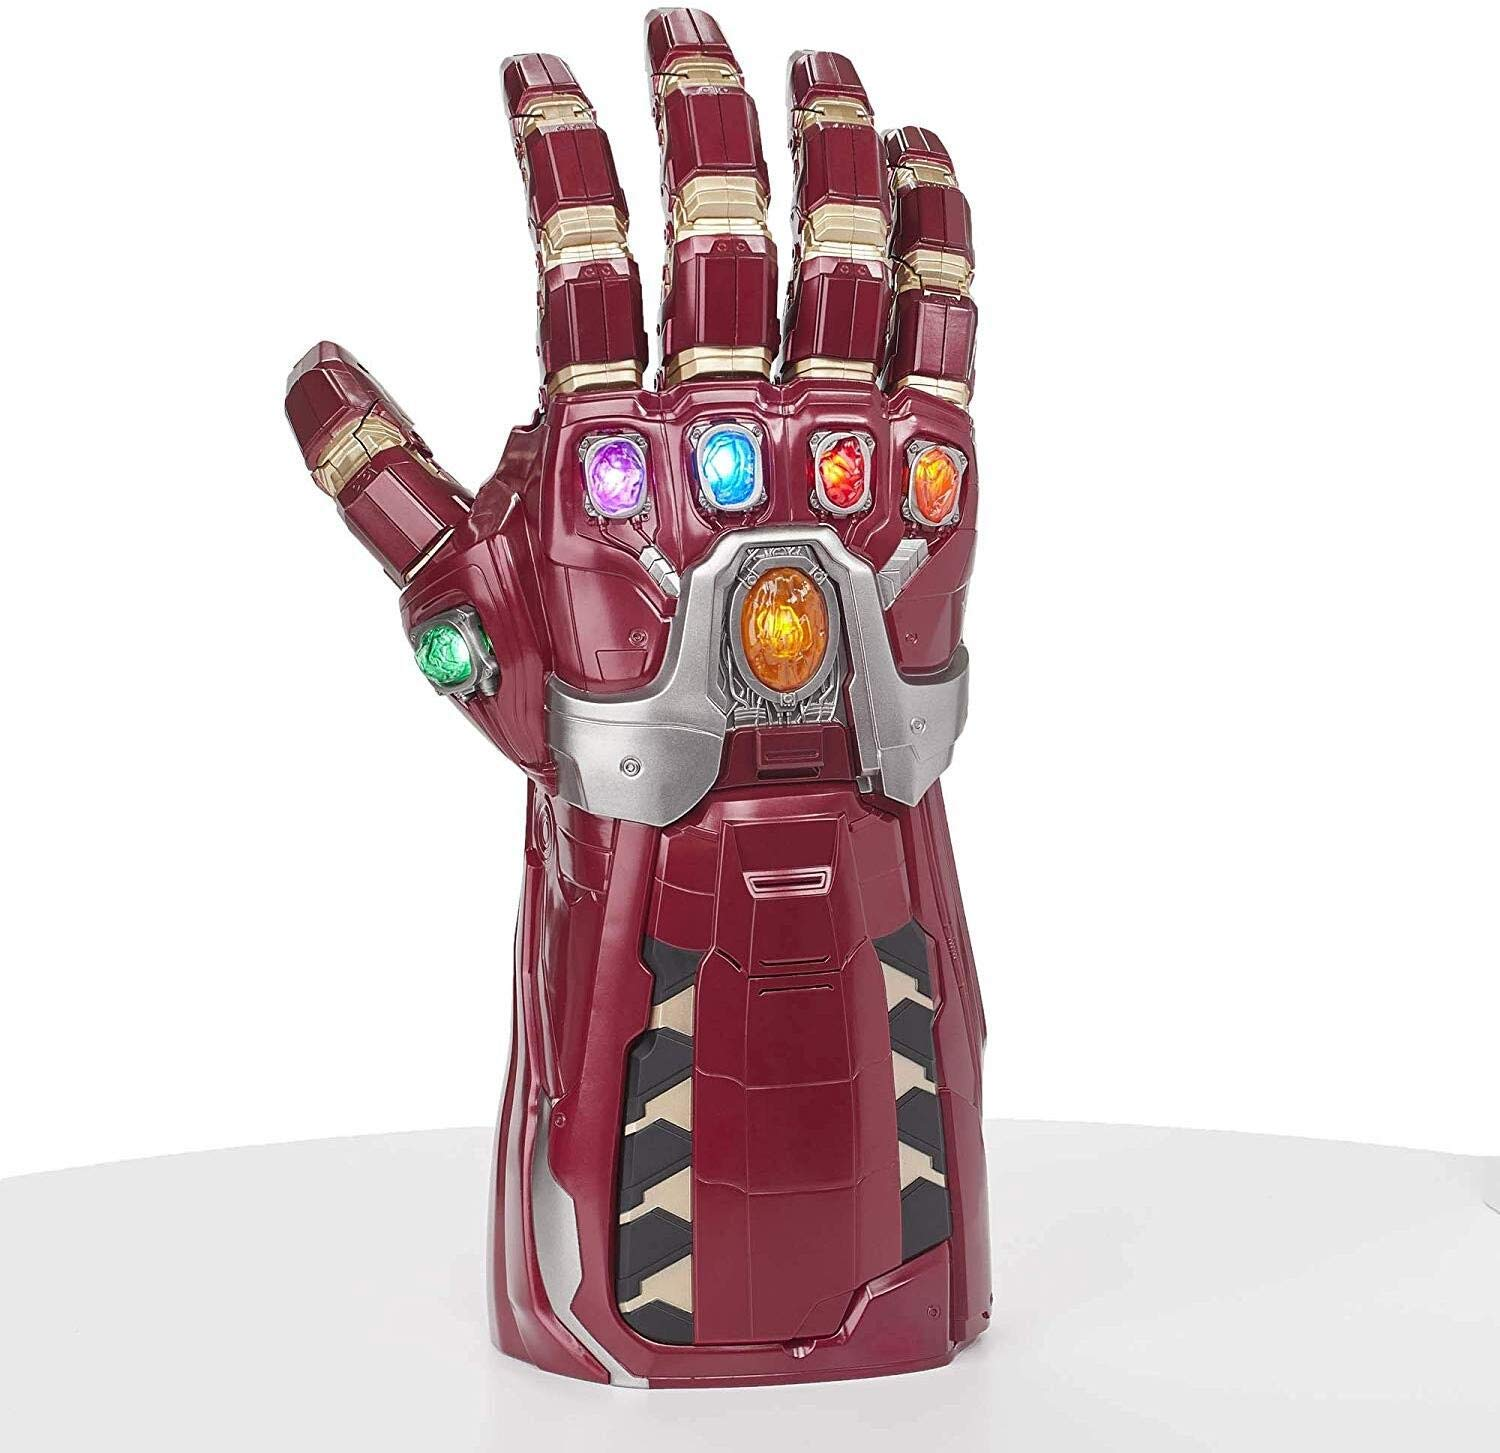 Avengers Marvel Legends Series Endgame Power Gauntlet Articulated Electronic Fist, $69 @amazon.com